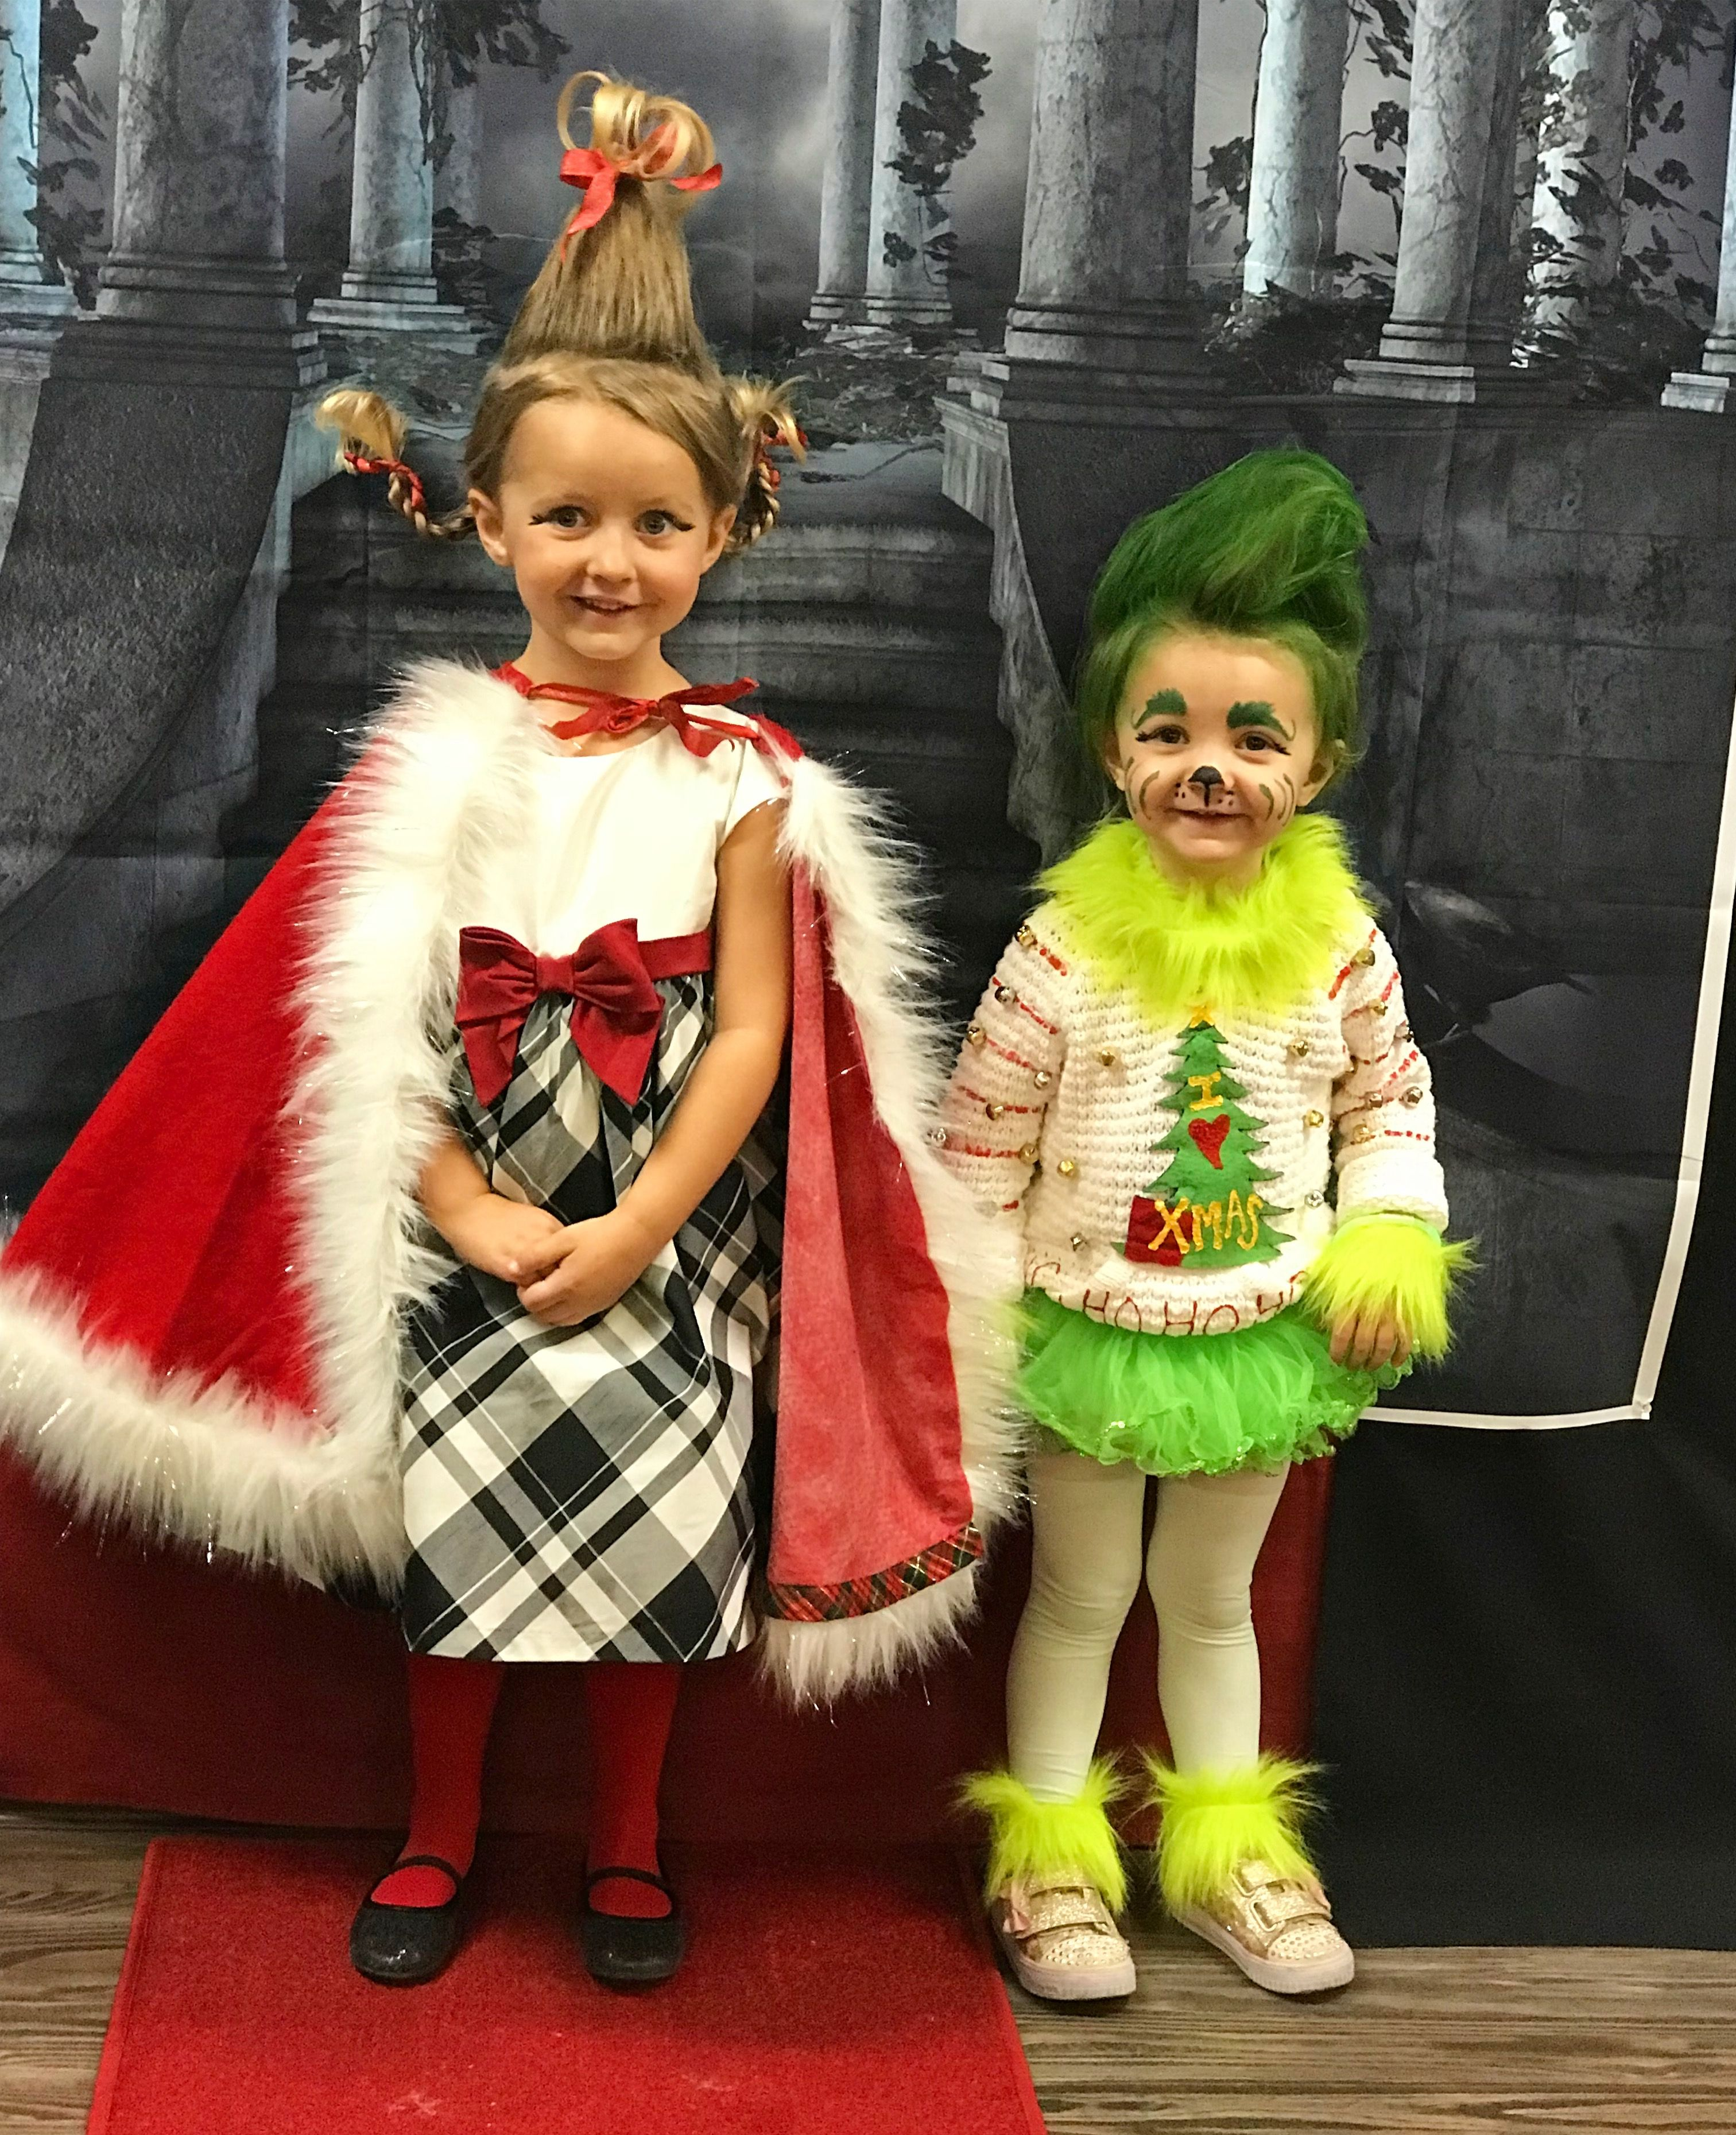 f9c4bae533a5 Cindy Lou Hoo And The Grinch. Best Kids Costume. Sibling Costume. Halloween  Costume. Sc 1 St Pinterest